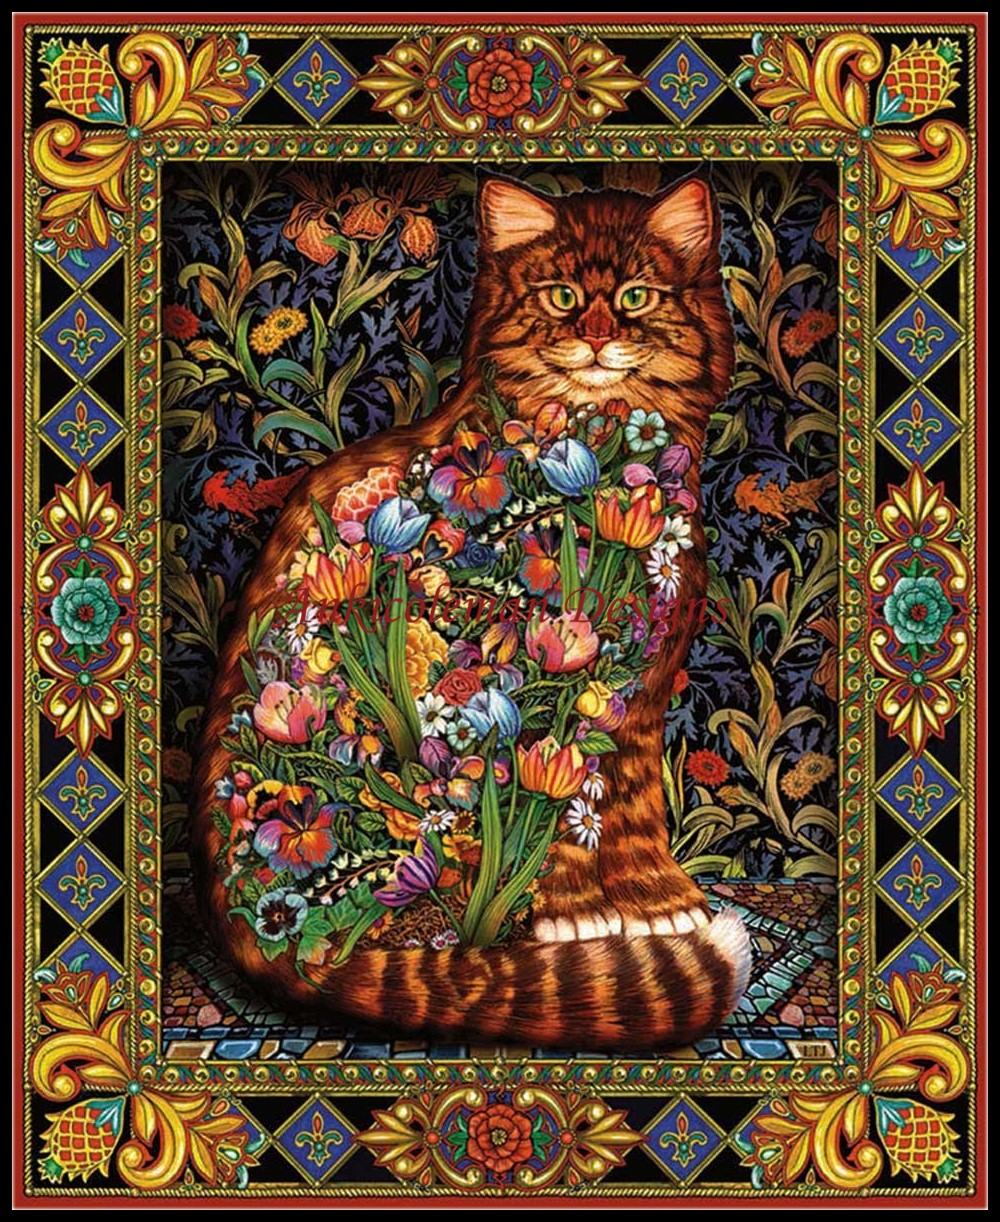 Needlework For Embroidery DIY French DMC Color High Quality - Counted Cross Stitch Kits 14 Ct Oil Painting - Tapestry Cat